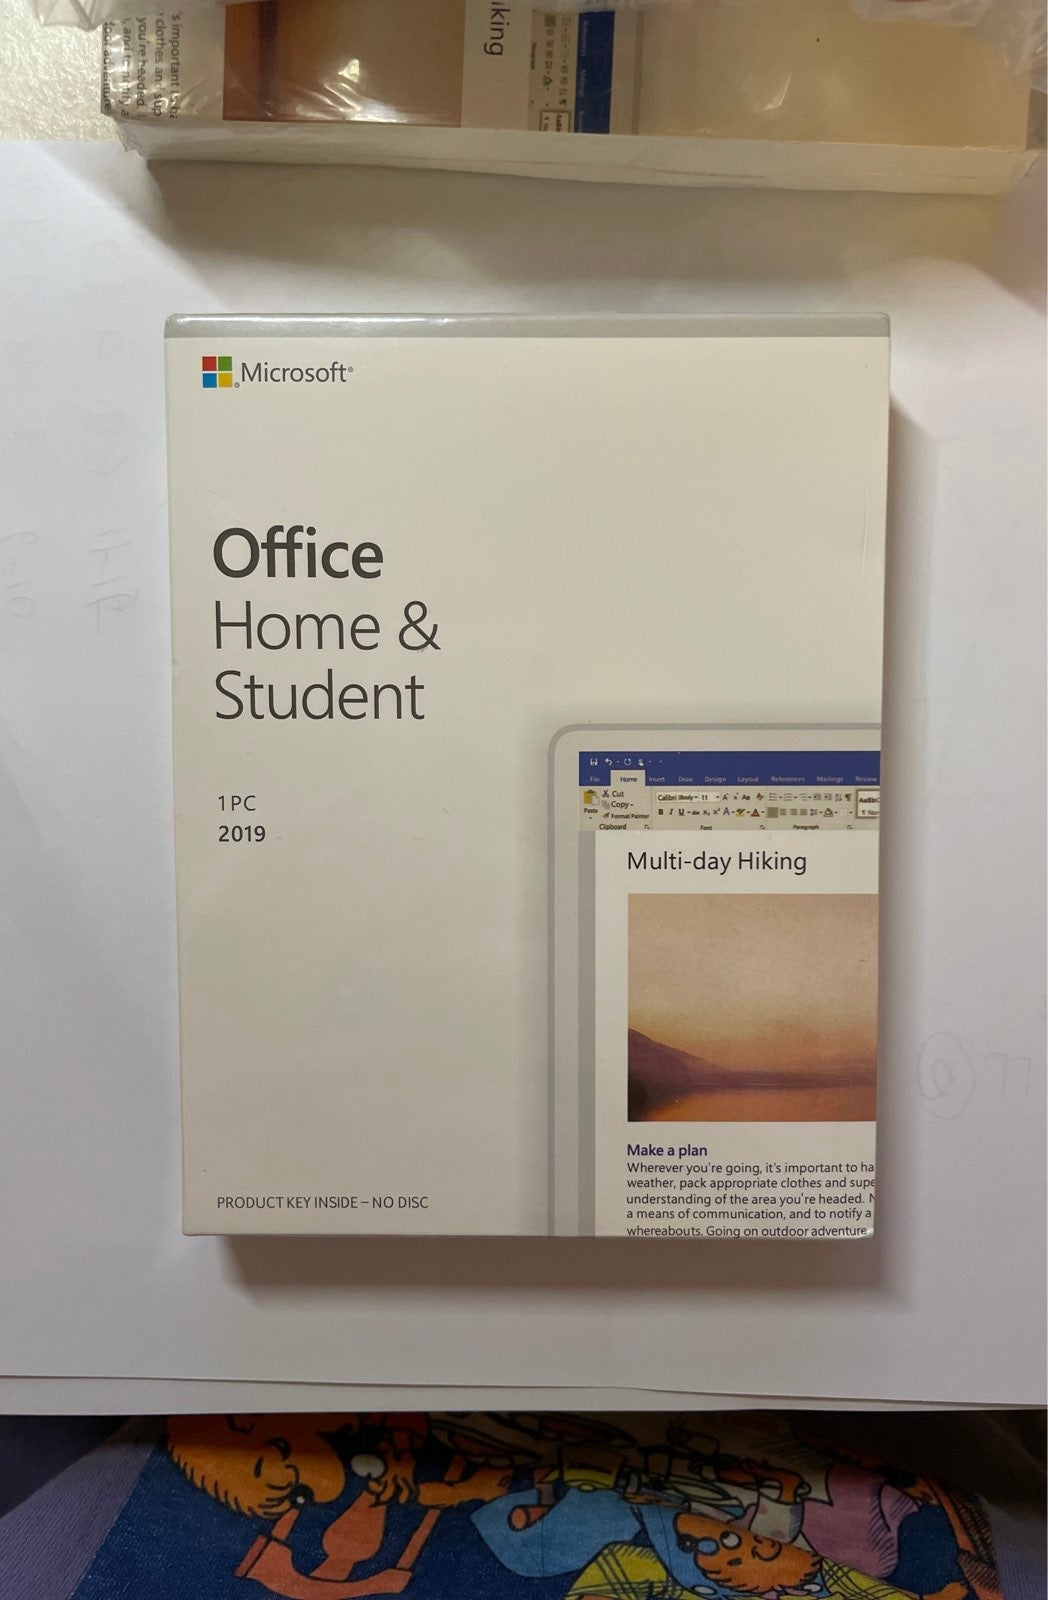 Microsoft Office Home&Student, 1pc 2019